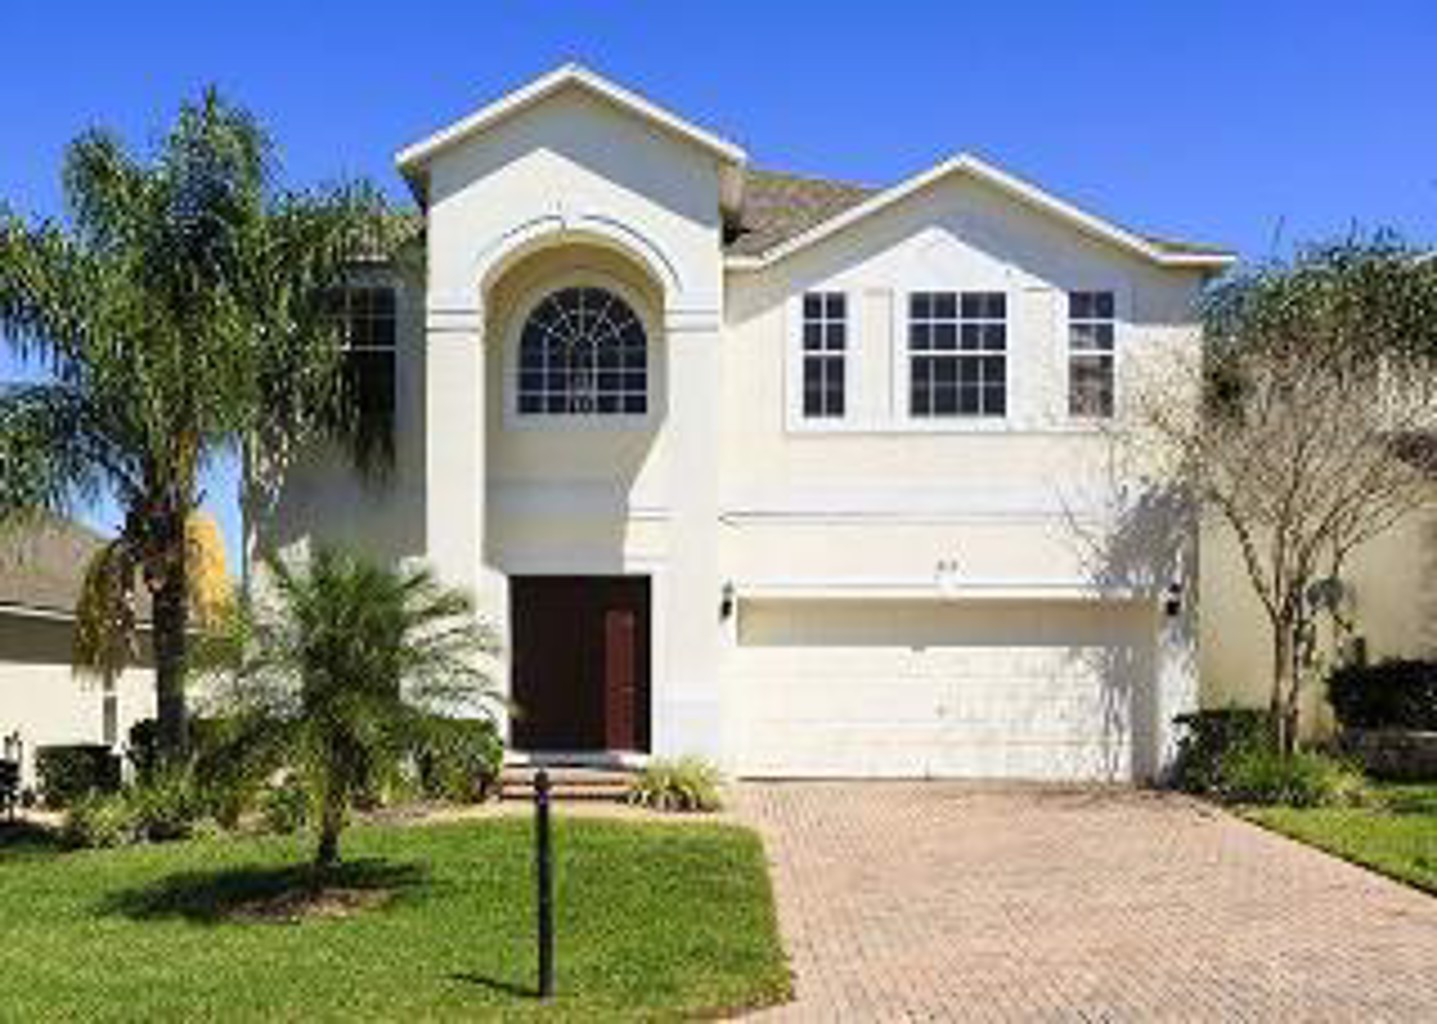 Legacy Park Homes by Oceanbeds